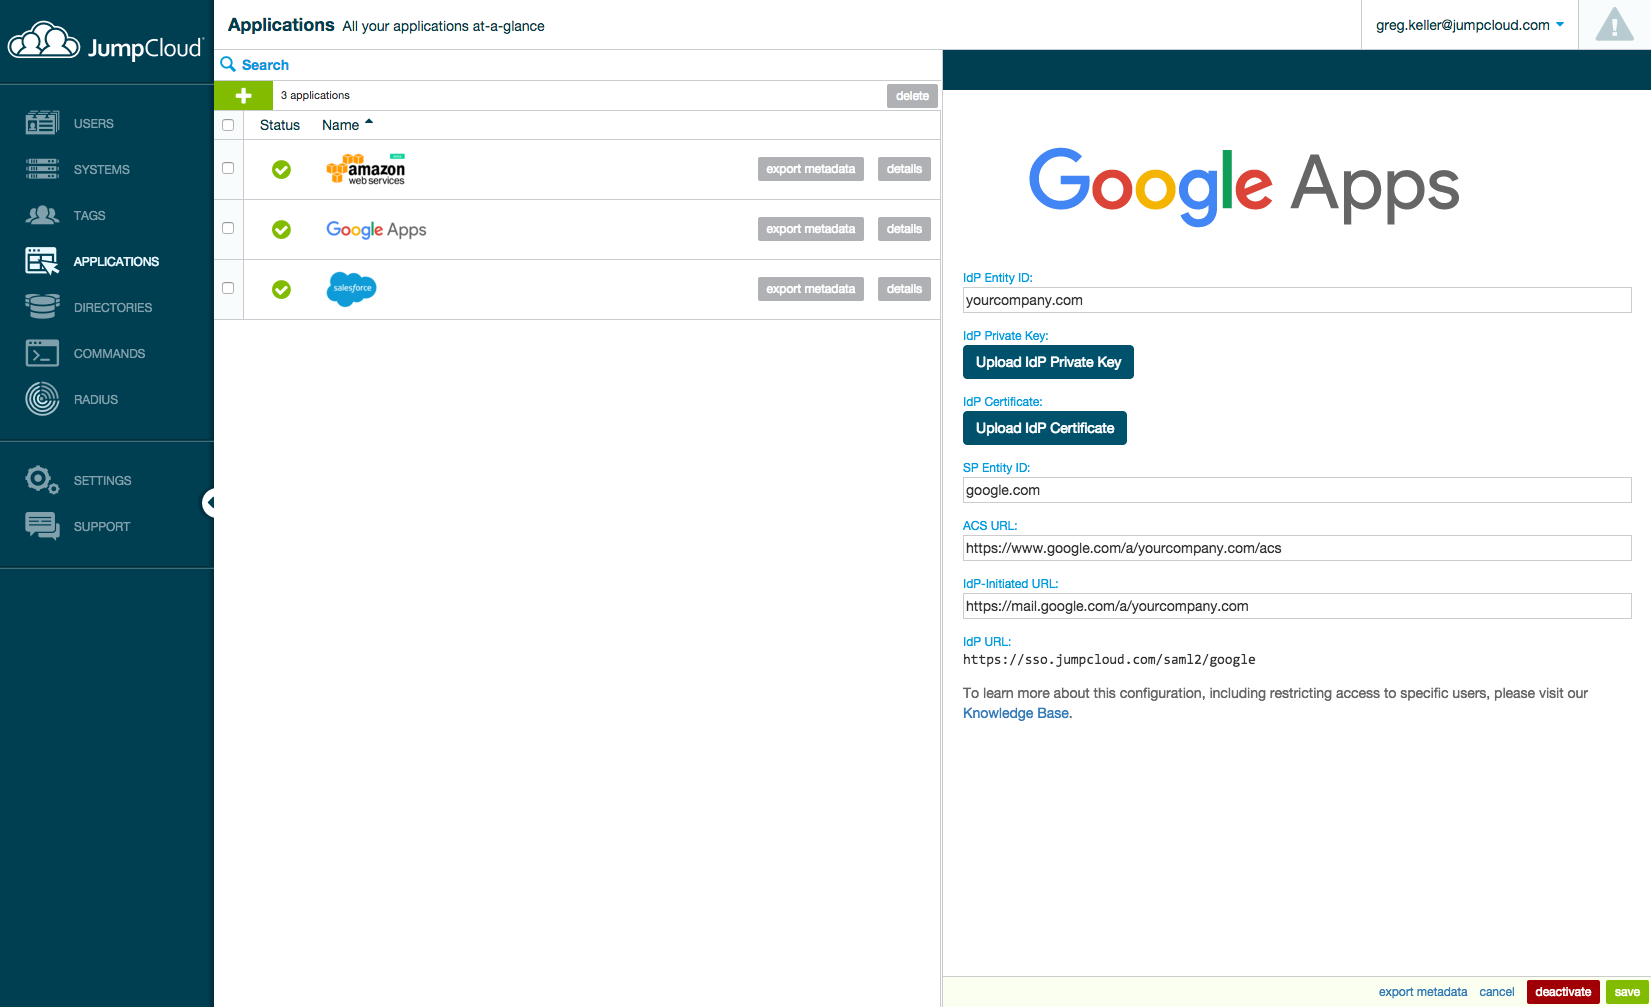 Application Access Screenshot 2